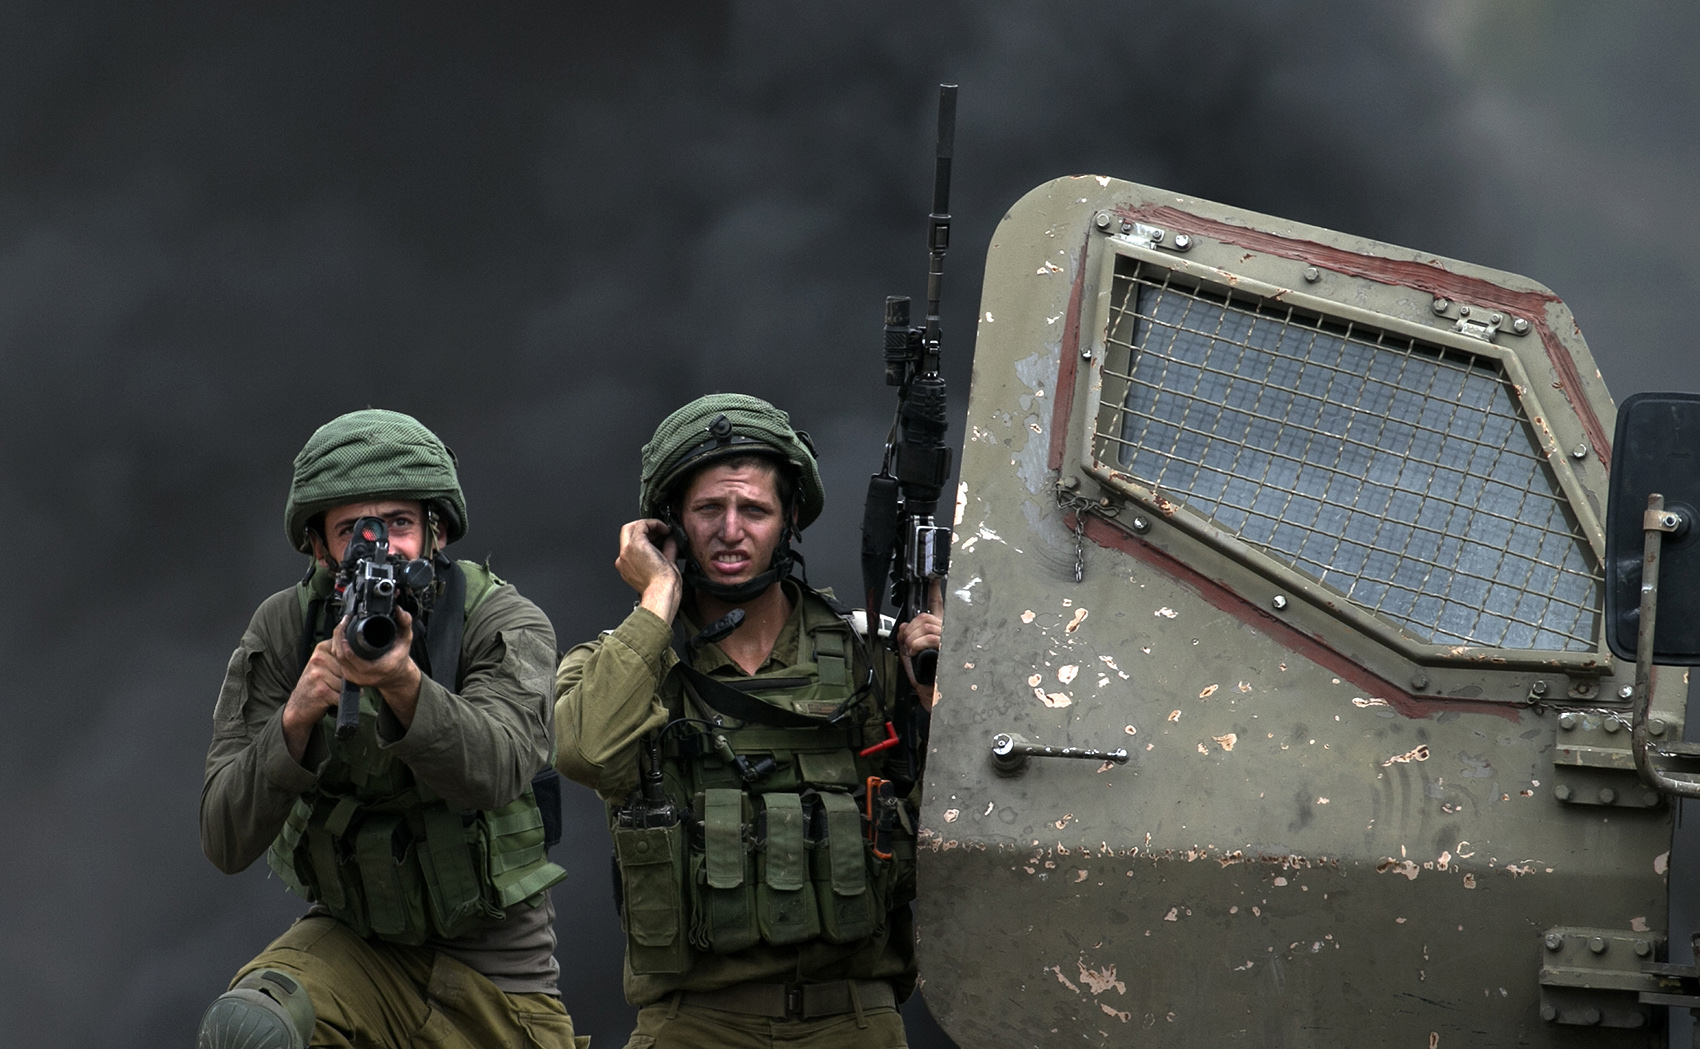 Two Israeli soldiers with armed weapons.